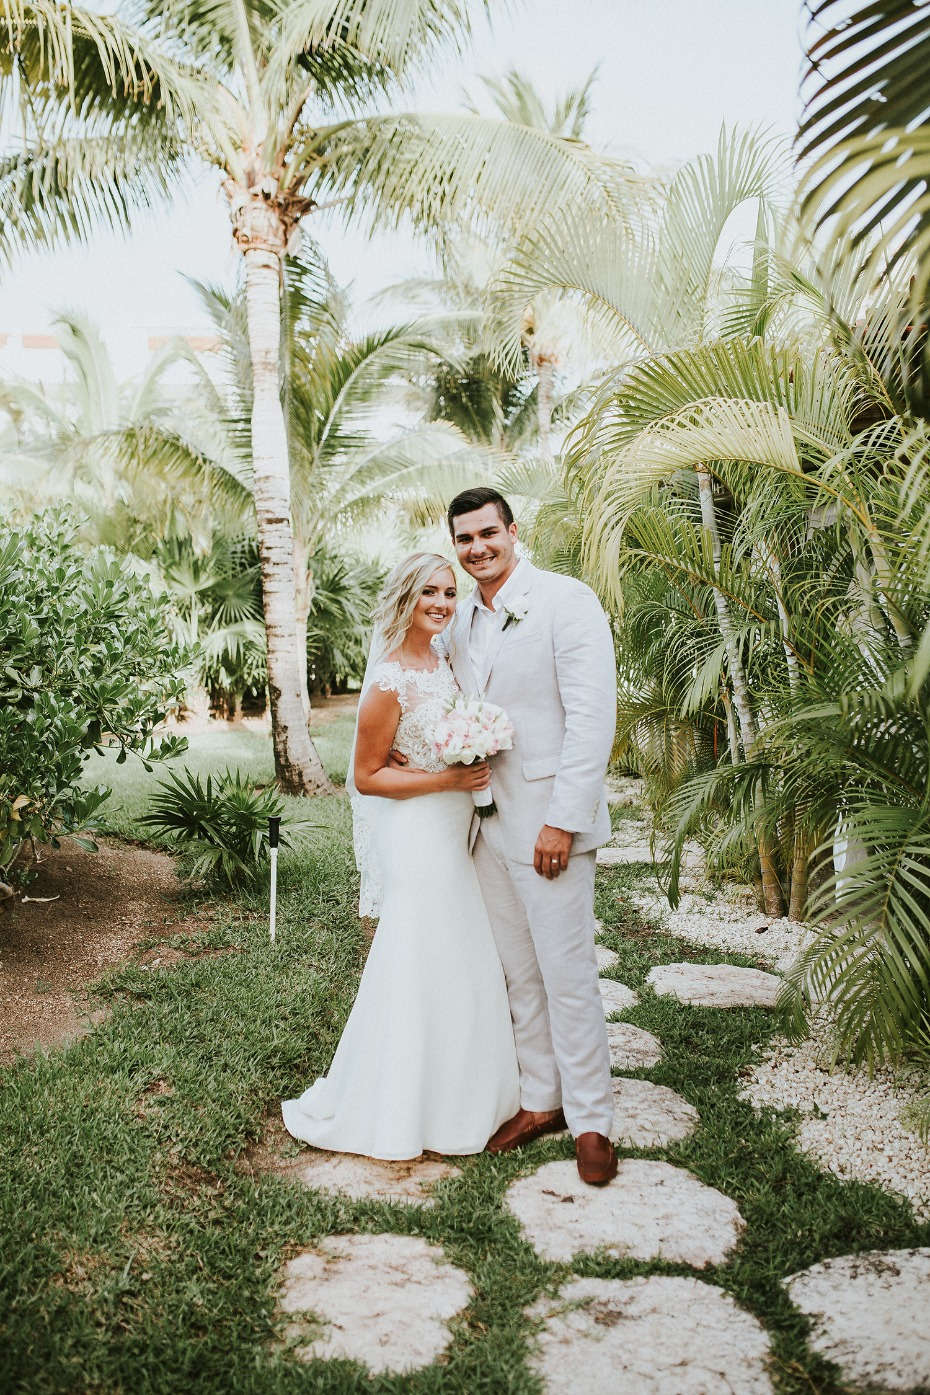 The palm trees swayed at this beach wedding in Mexico